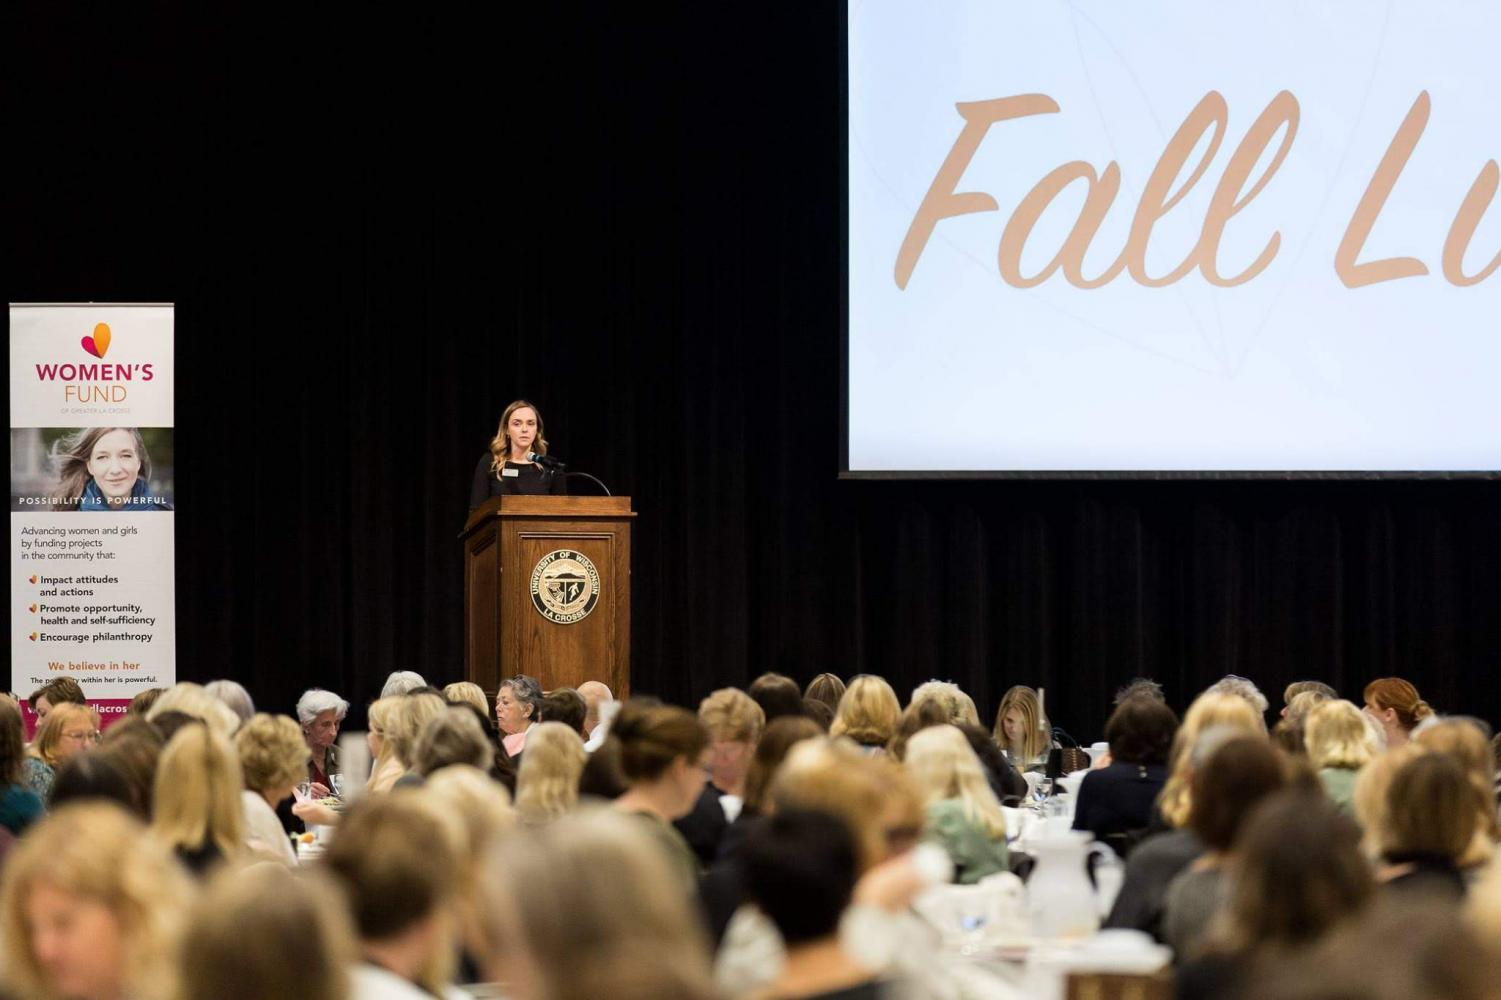 Photo taken during the Women's Fund Fall Luncheon event at UWL. Retrieved from Kaycie Green